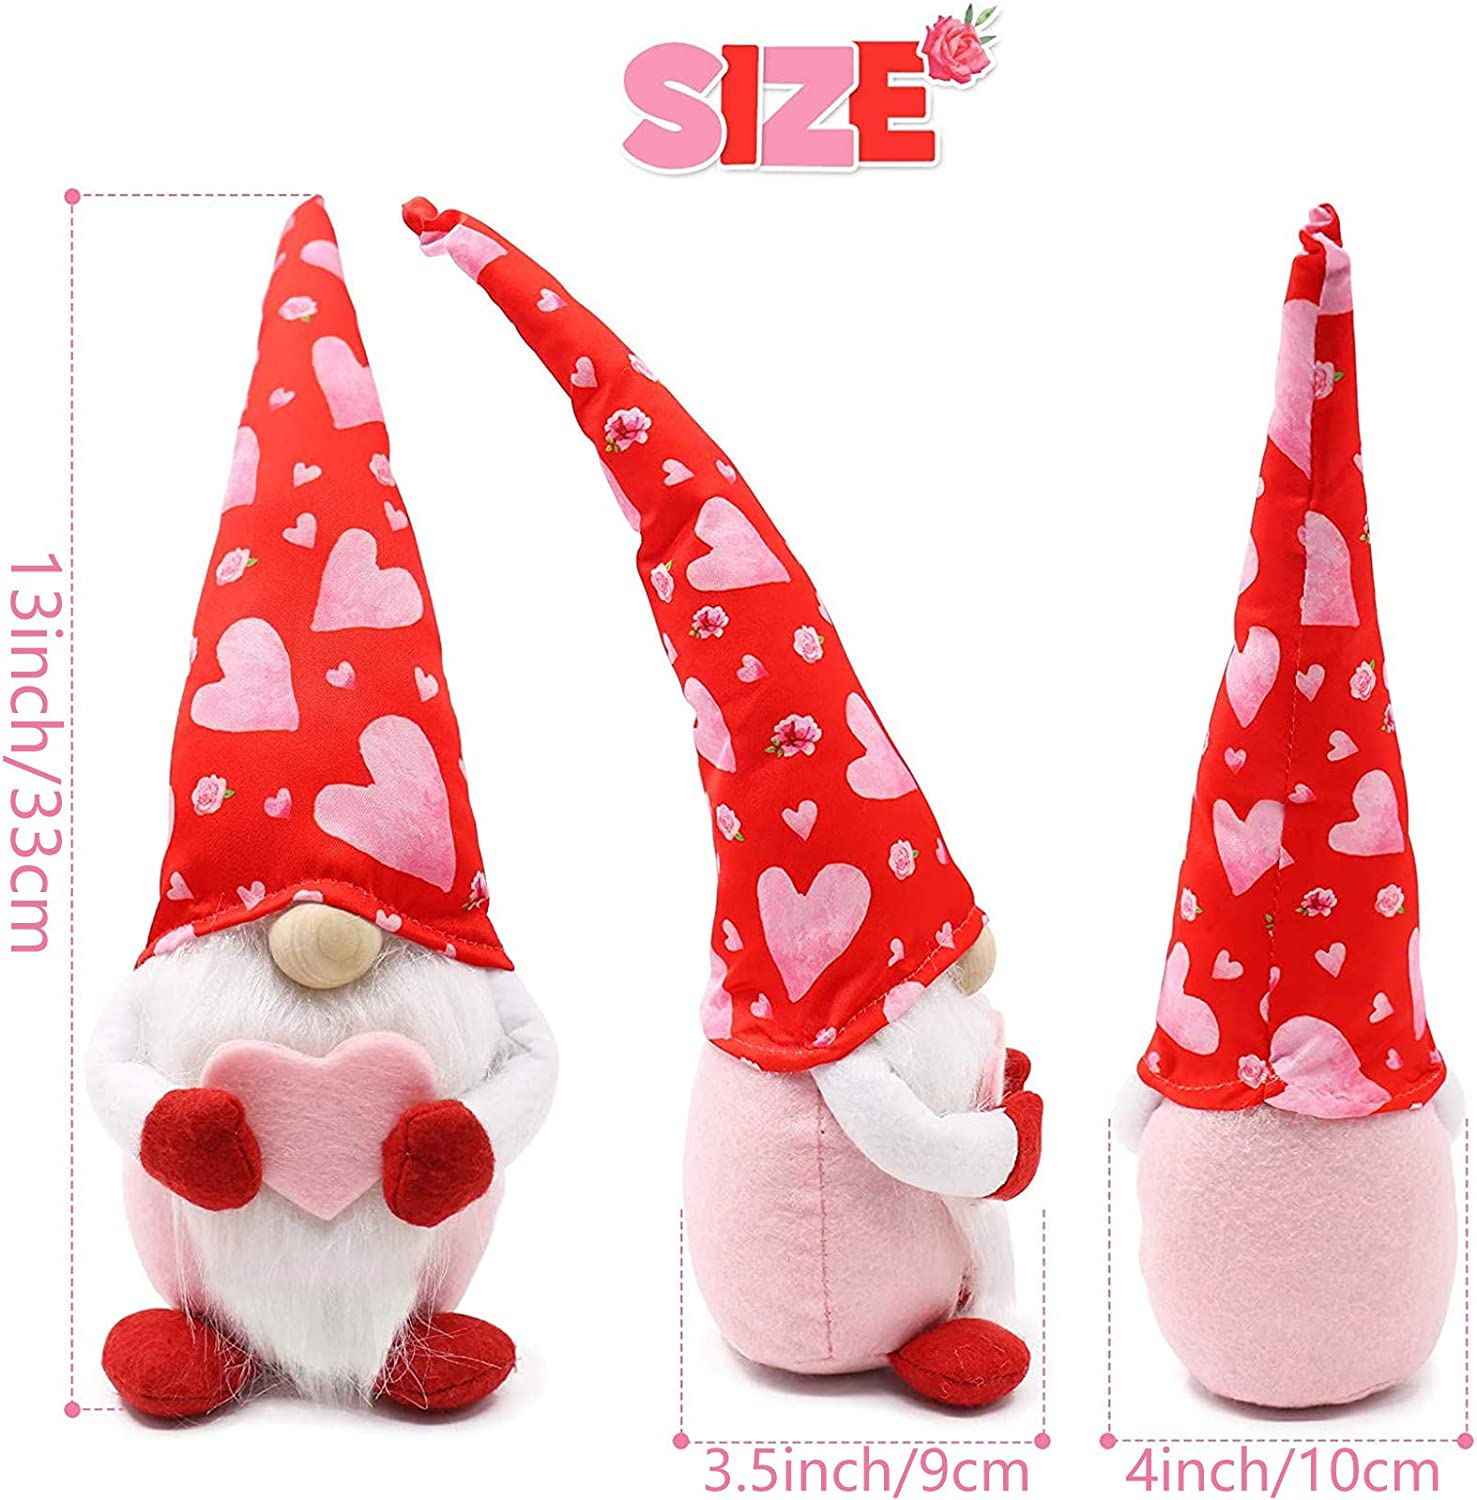 Wedding Lover Sweet Gift for Girlfriends Women Handmake Faceless Elf Couples Figurines Romantic Home Bedroom Decorations for Valentines Day Easter Men Valentines Day Plush Gnome Dolls Family